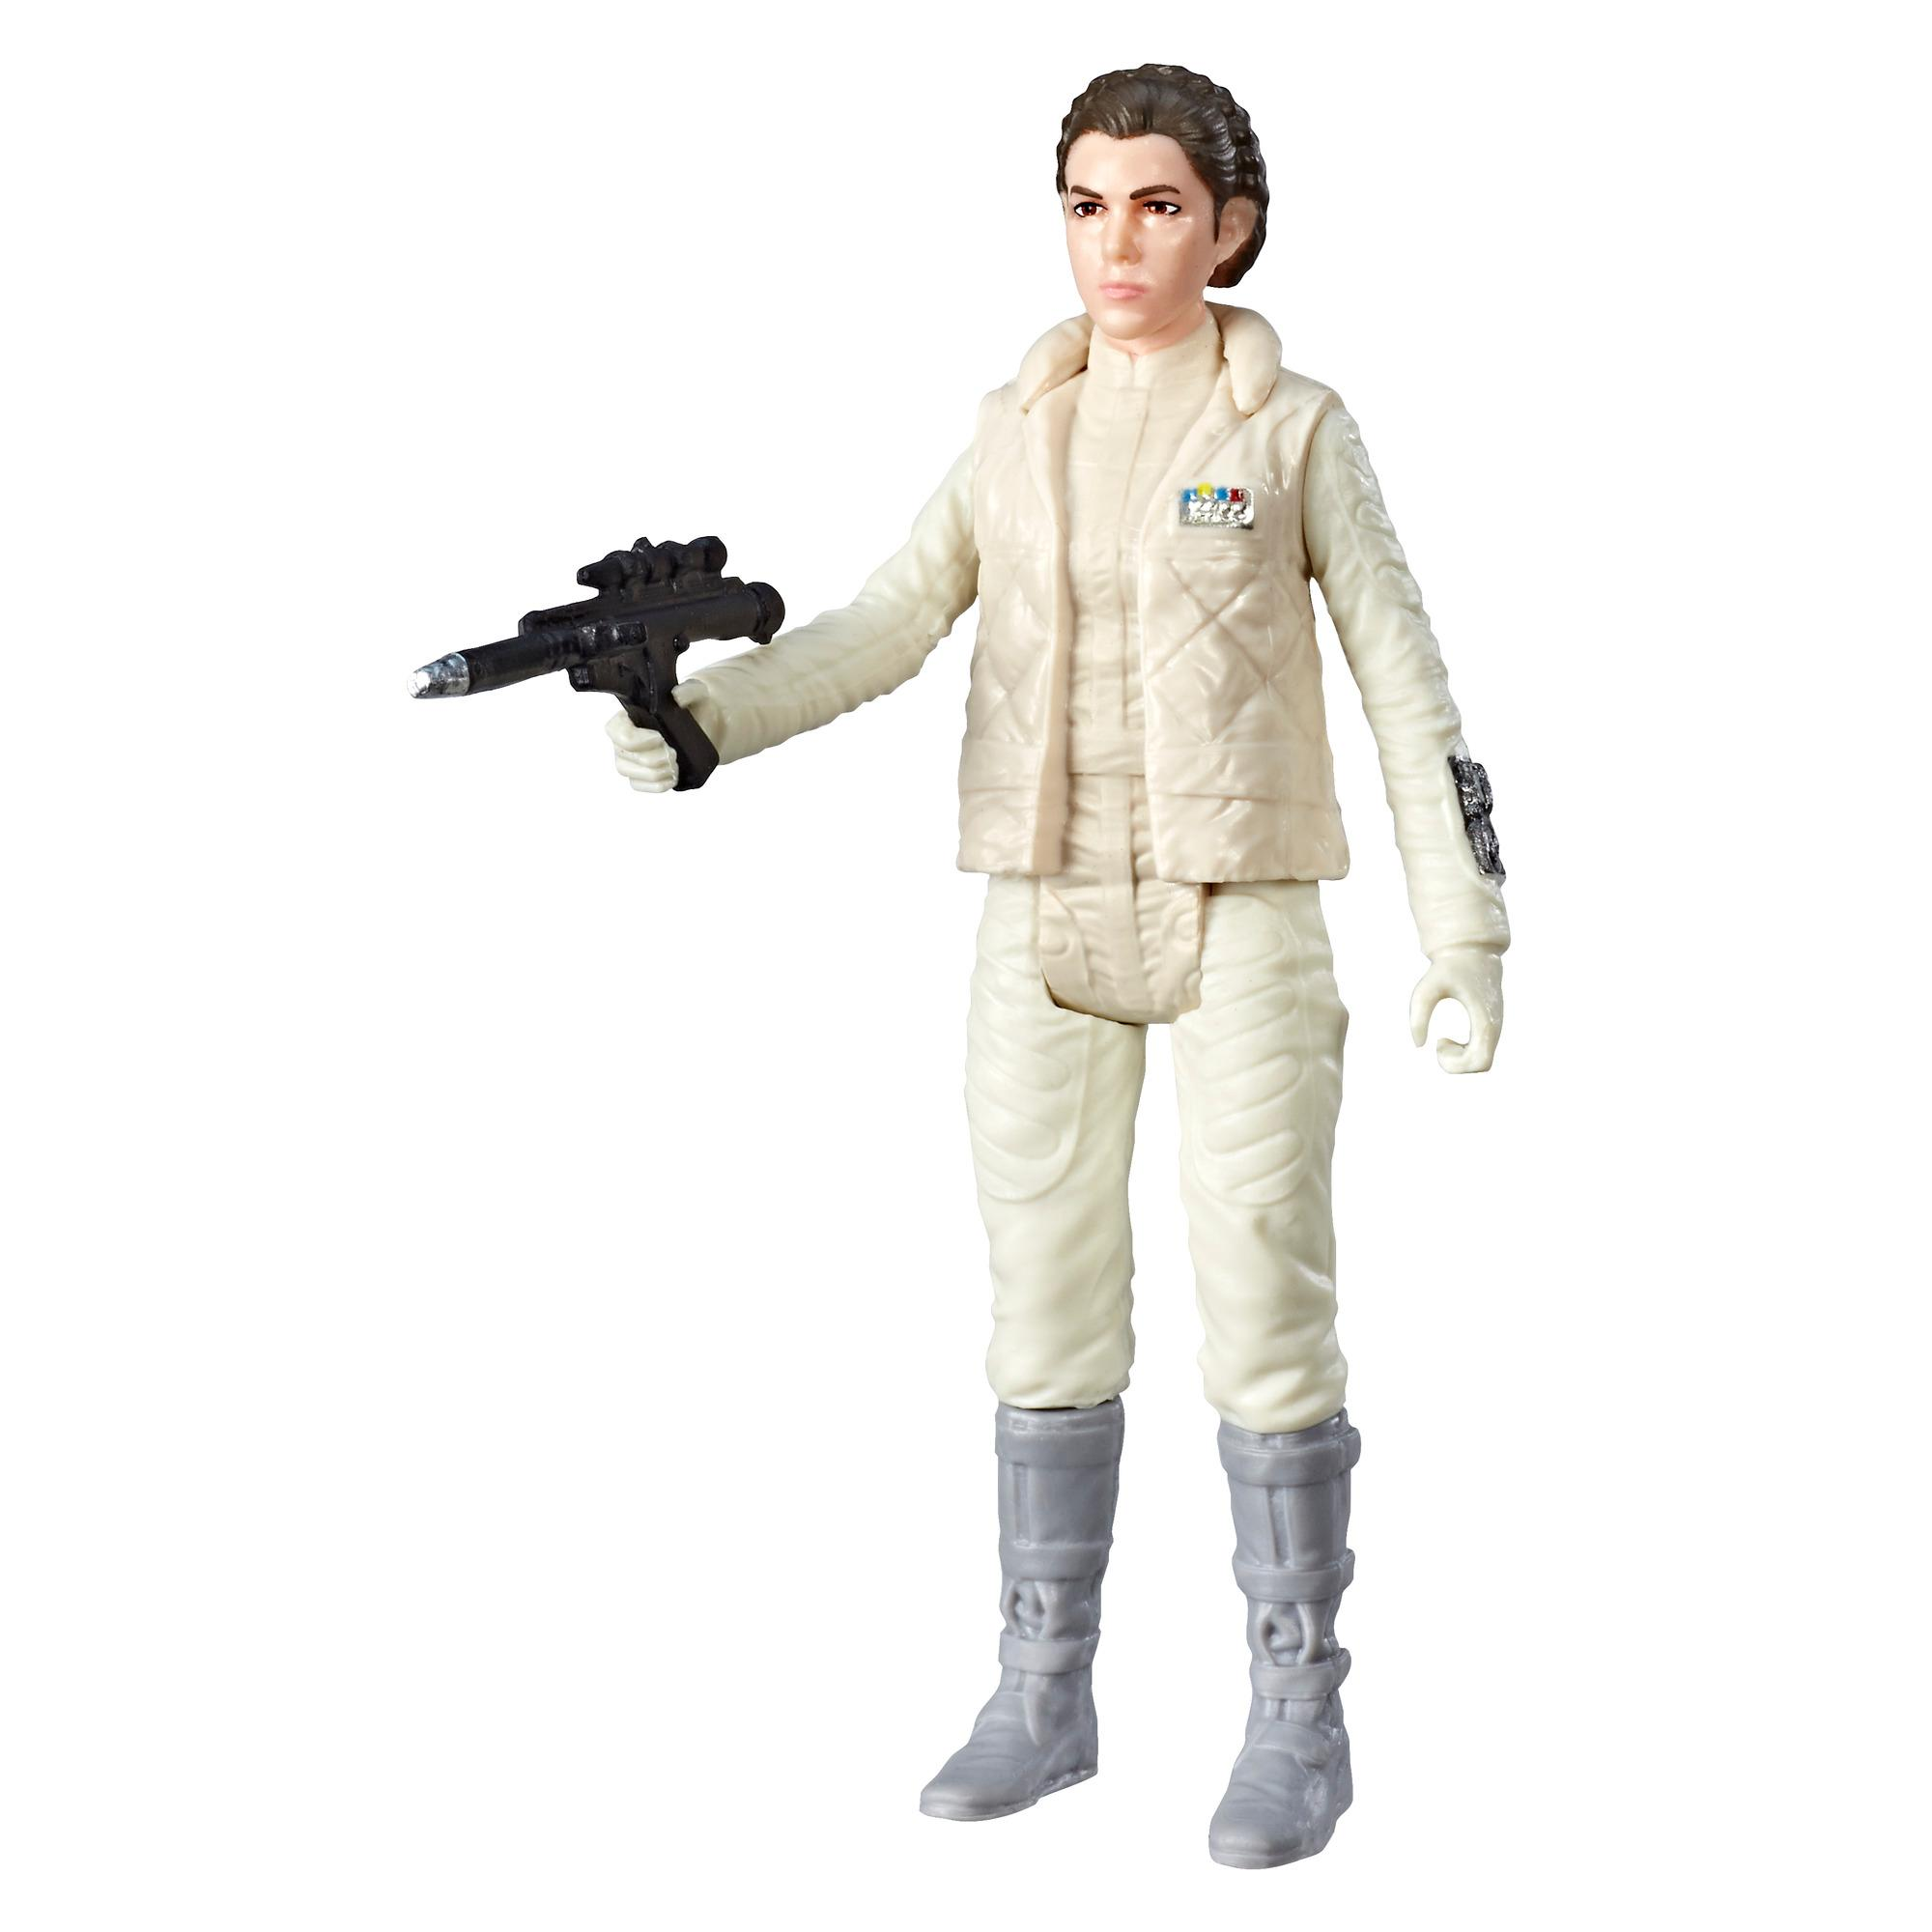 Star Wars Galaxy of Adventures - Figurine Princess Leia et mini bande dessinée